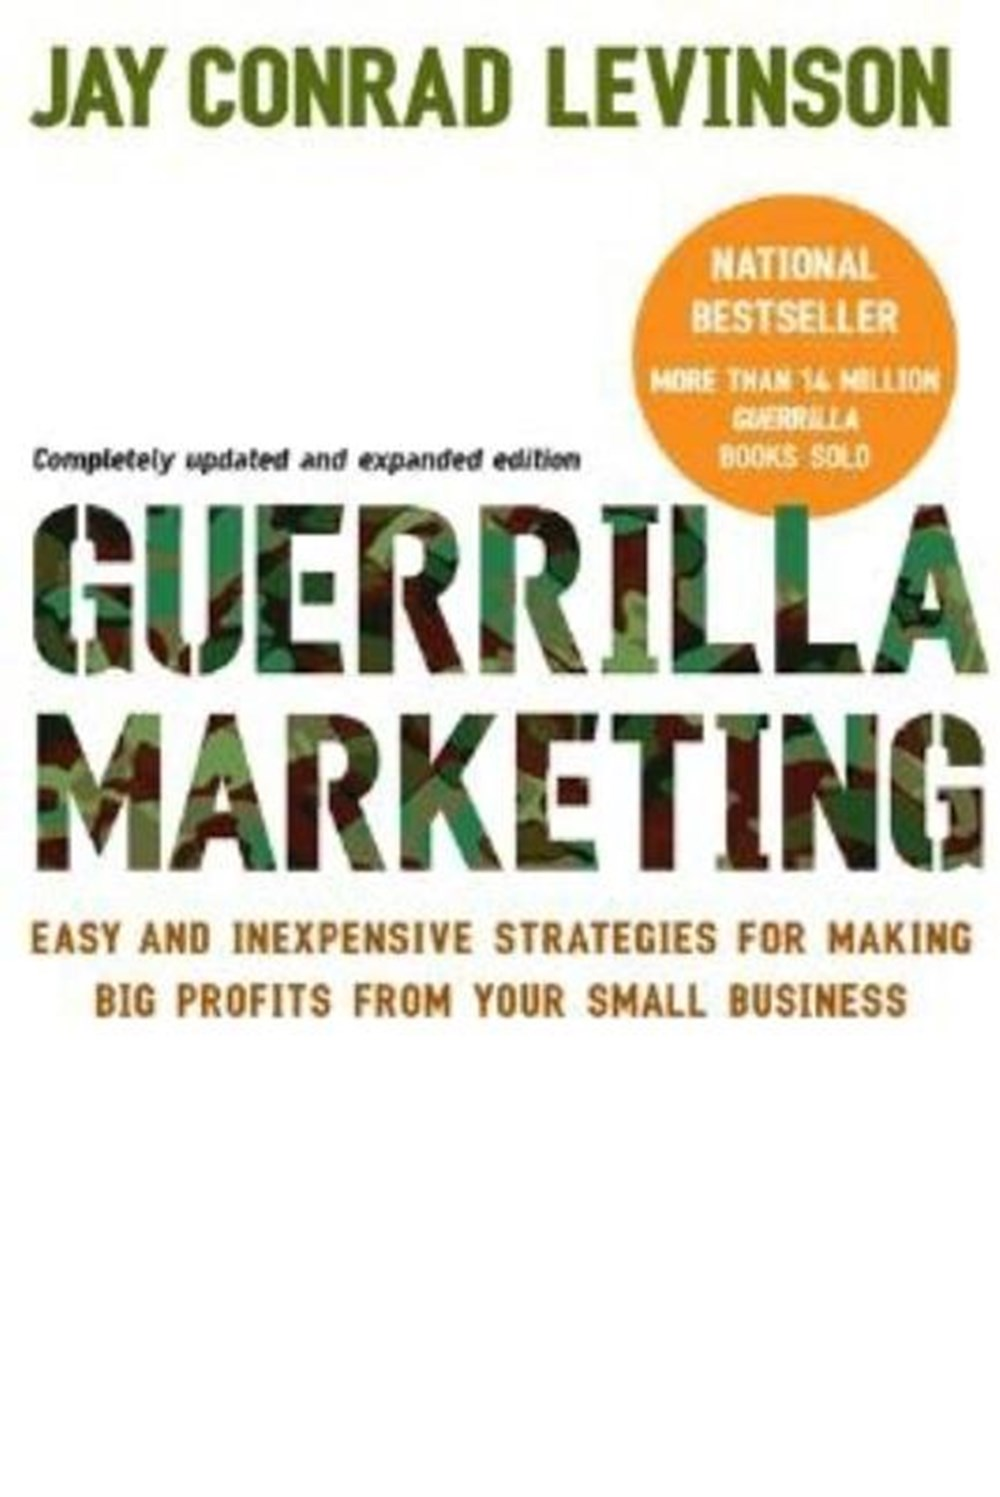 Guerrilla Marketing Easy and Inexpensive Strategies for Making Big Profits from Your Small Business